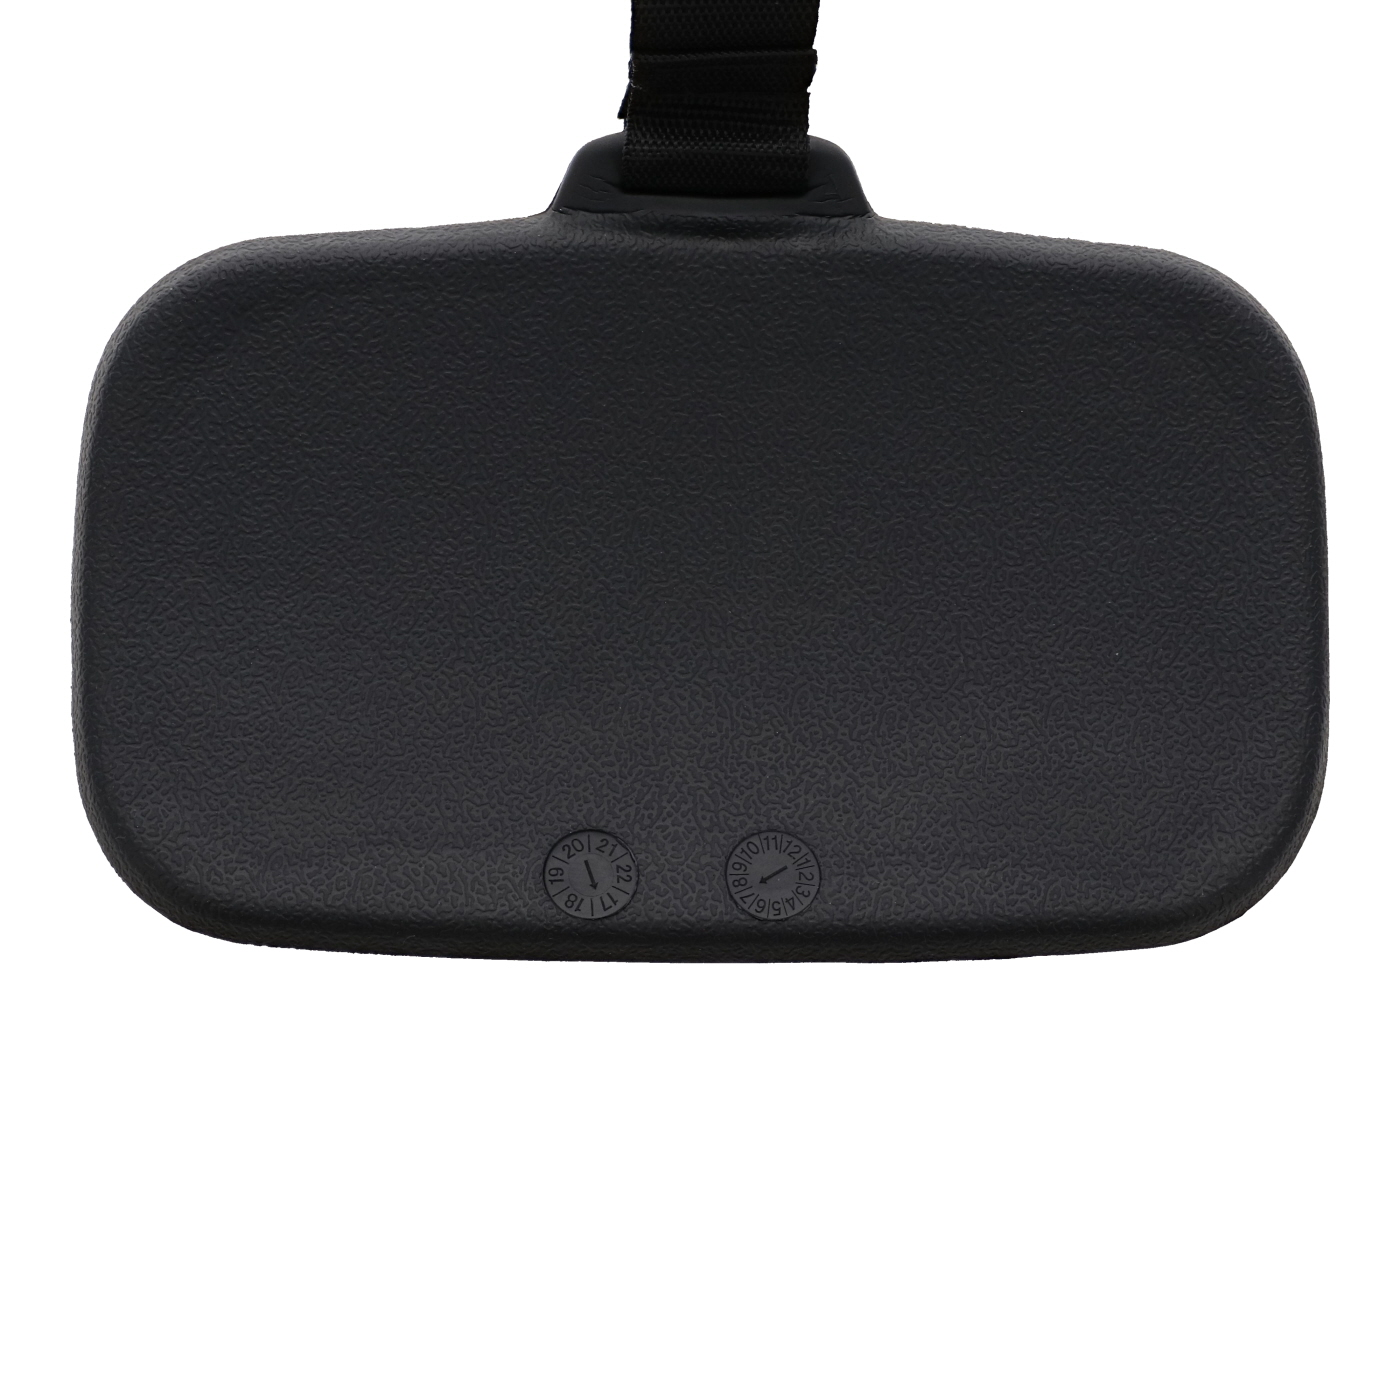 Universal spa headrest with counterweight